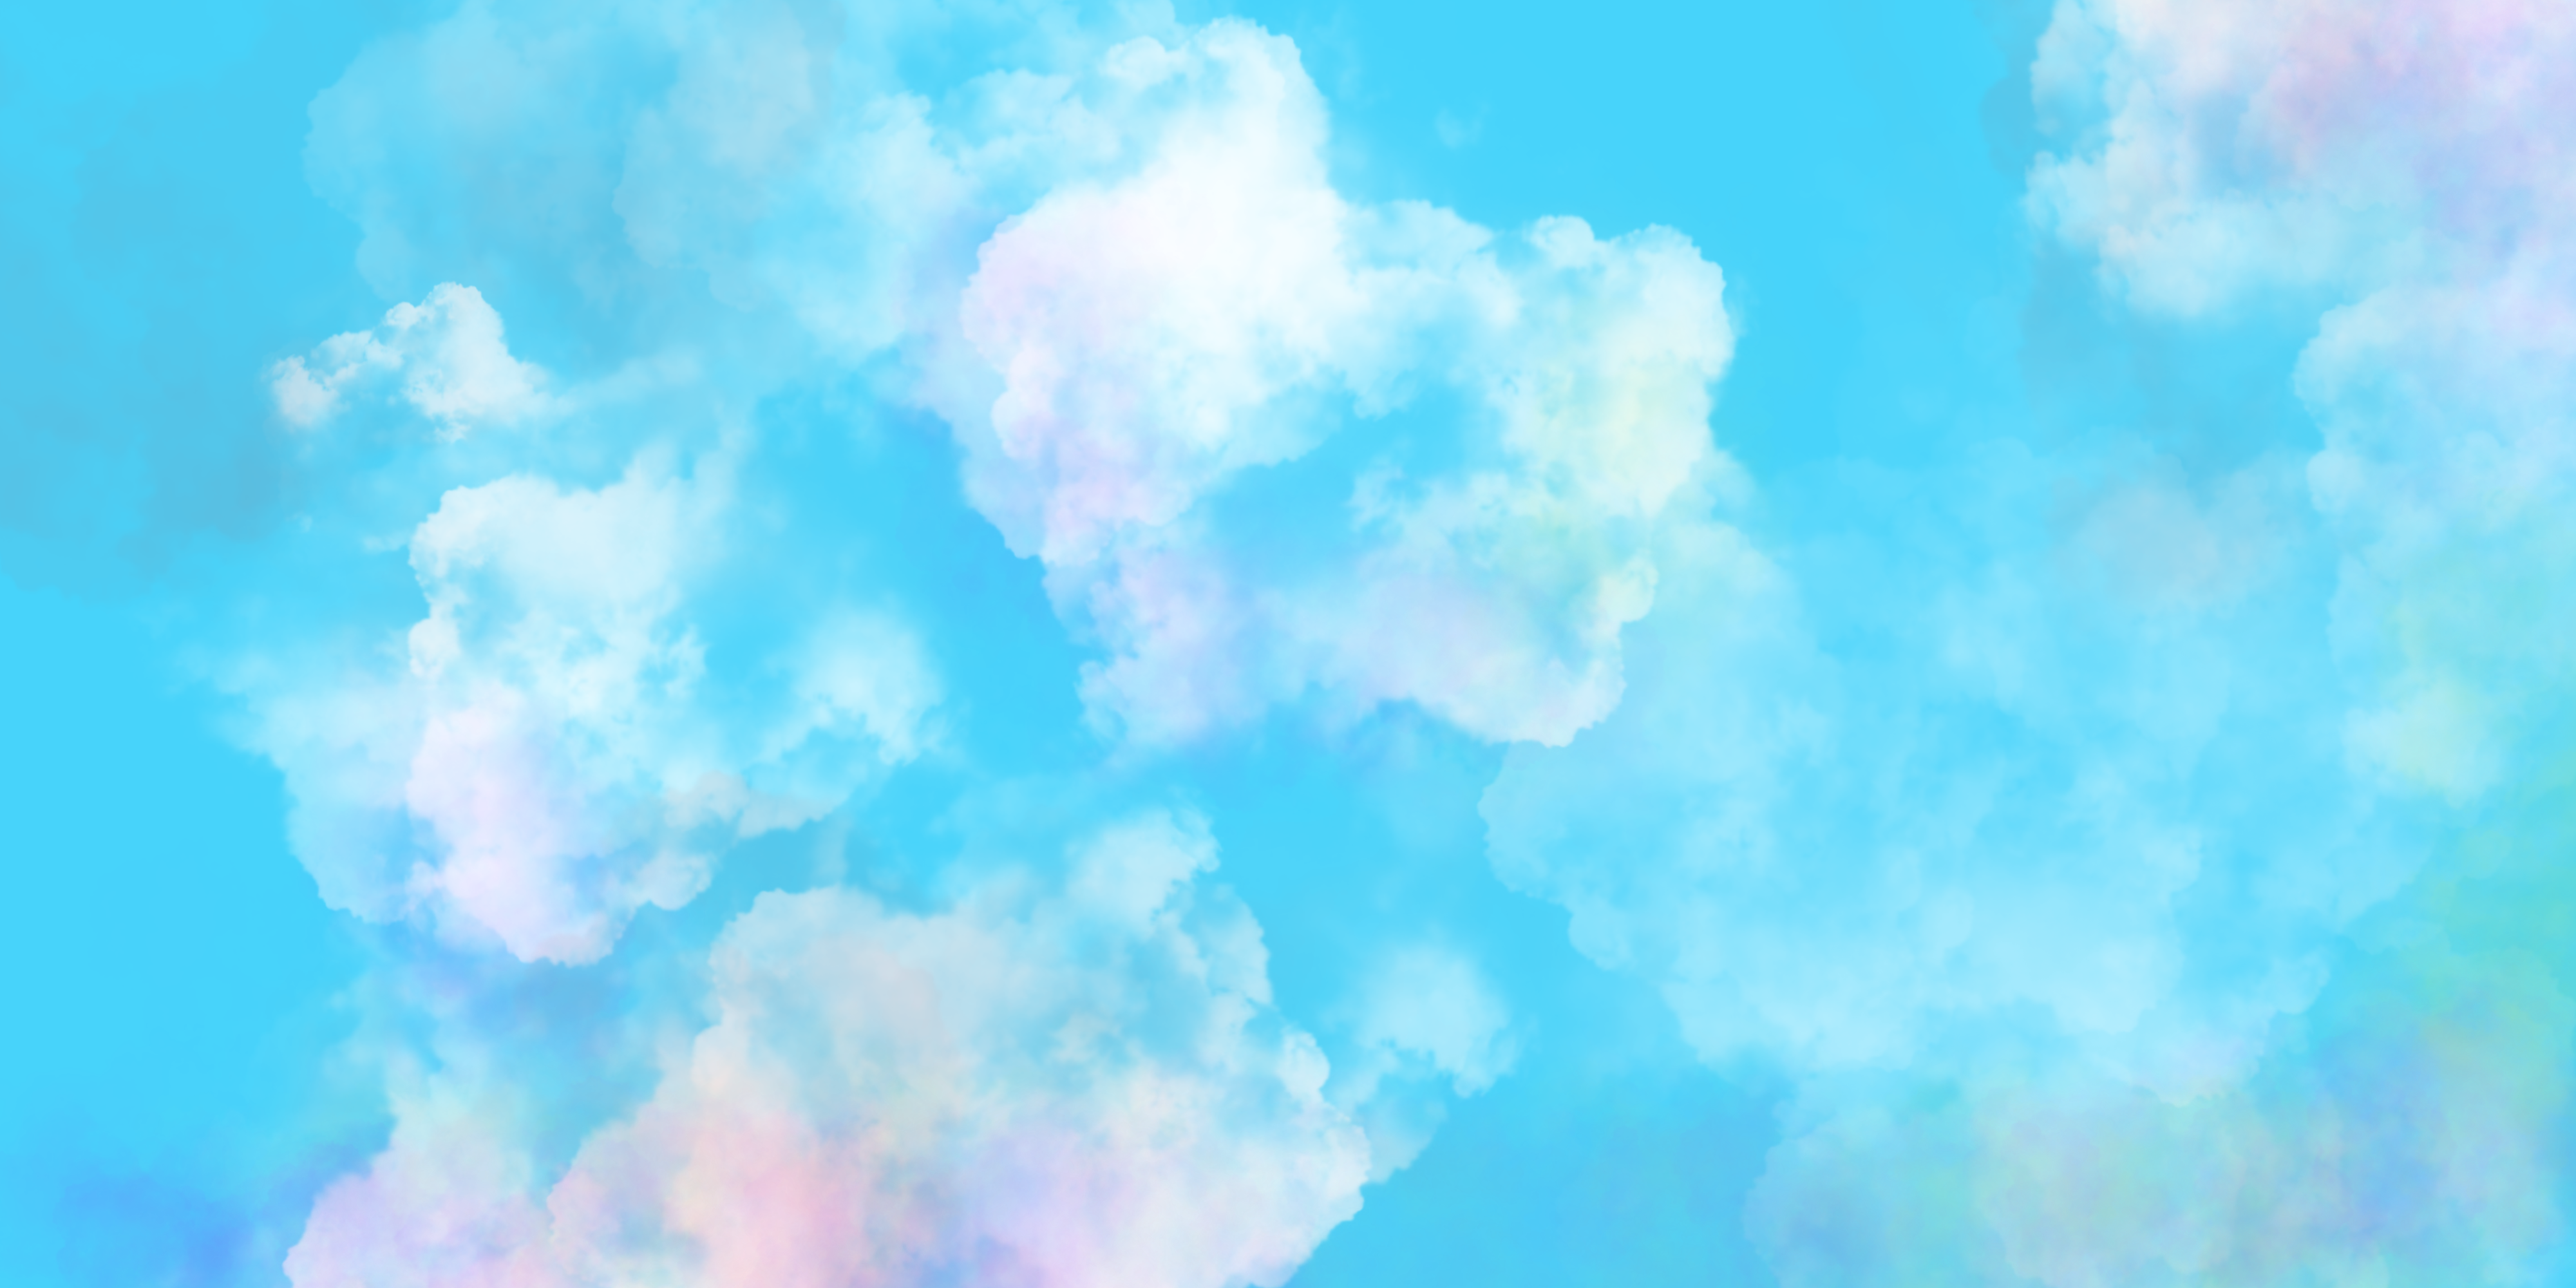 Drawing Realistic Clouds with SVG and CSS   CSS-Tricks